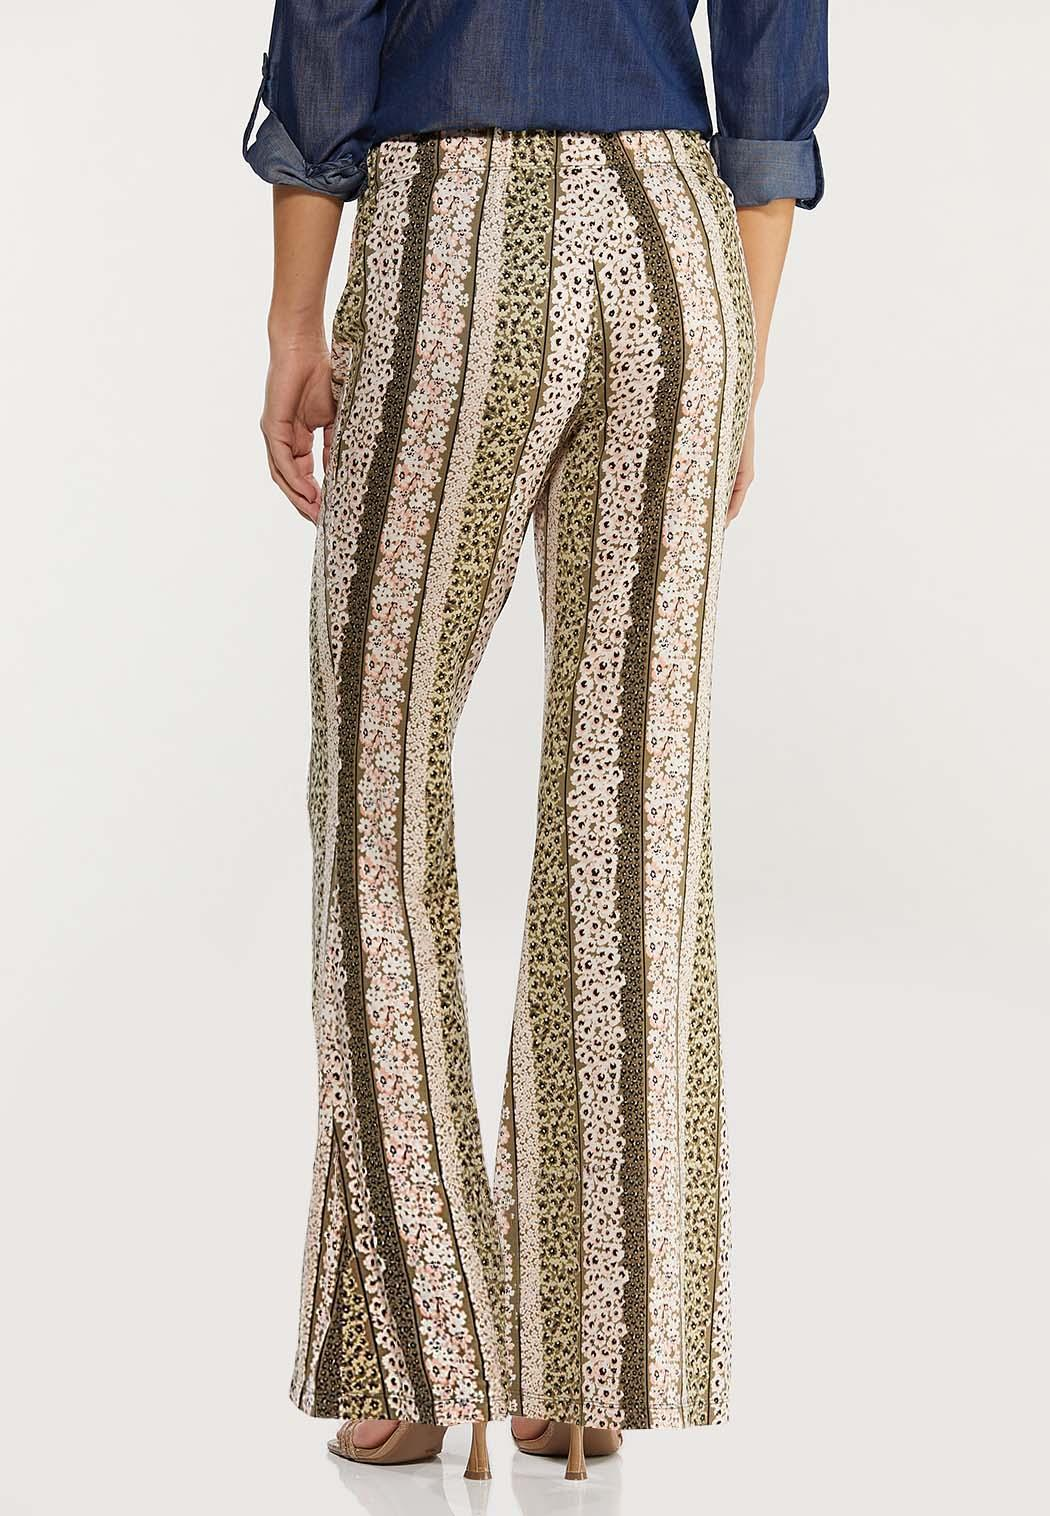 Stripe Floral Flare Pants (Item #44470180)